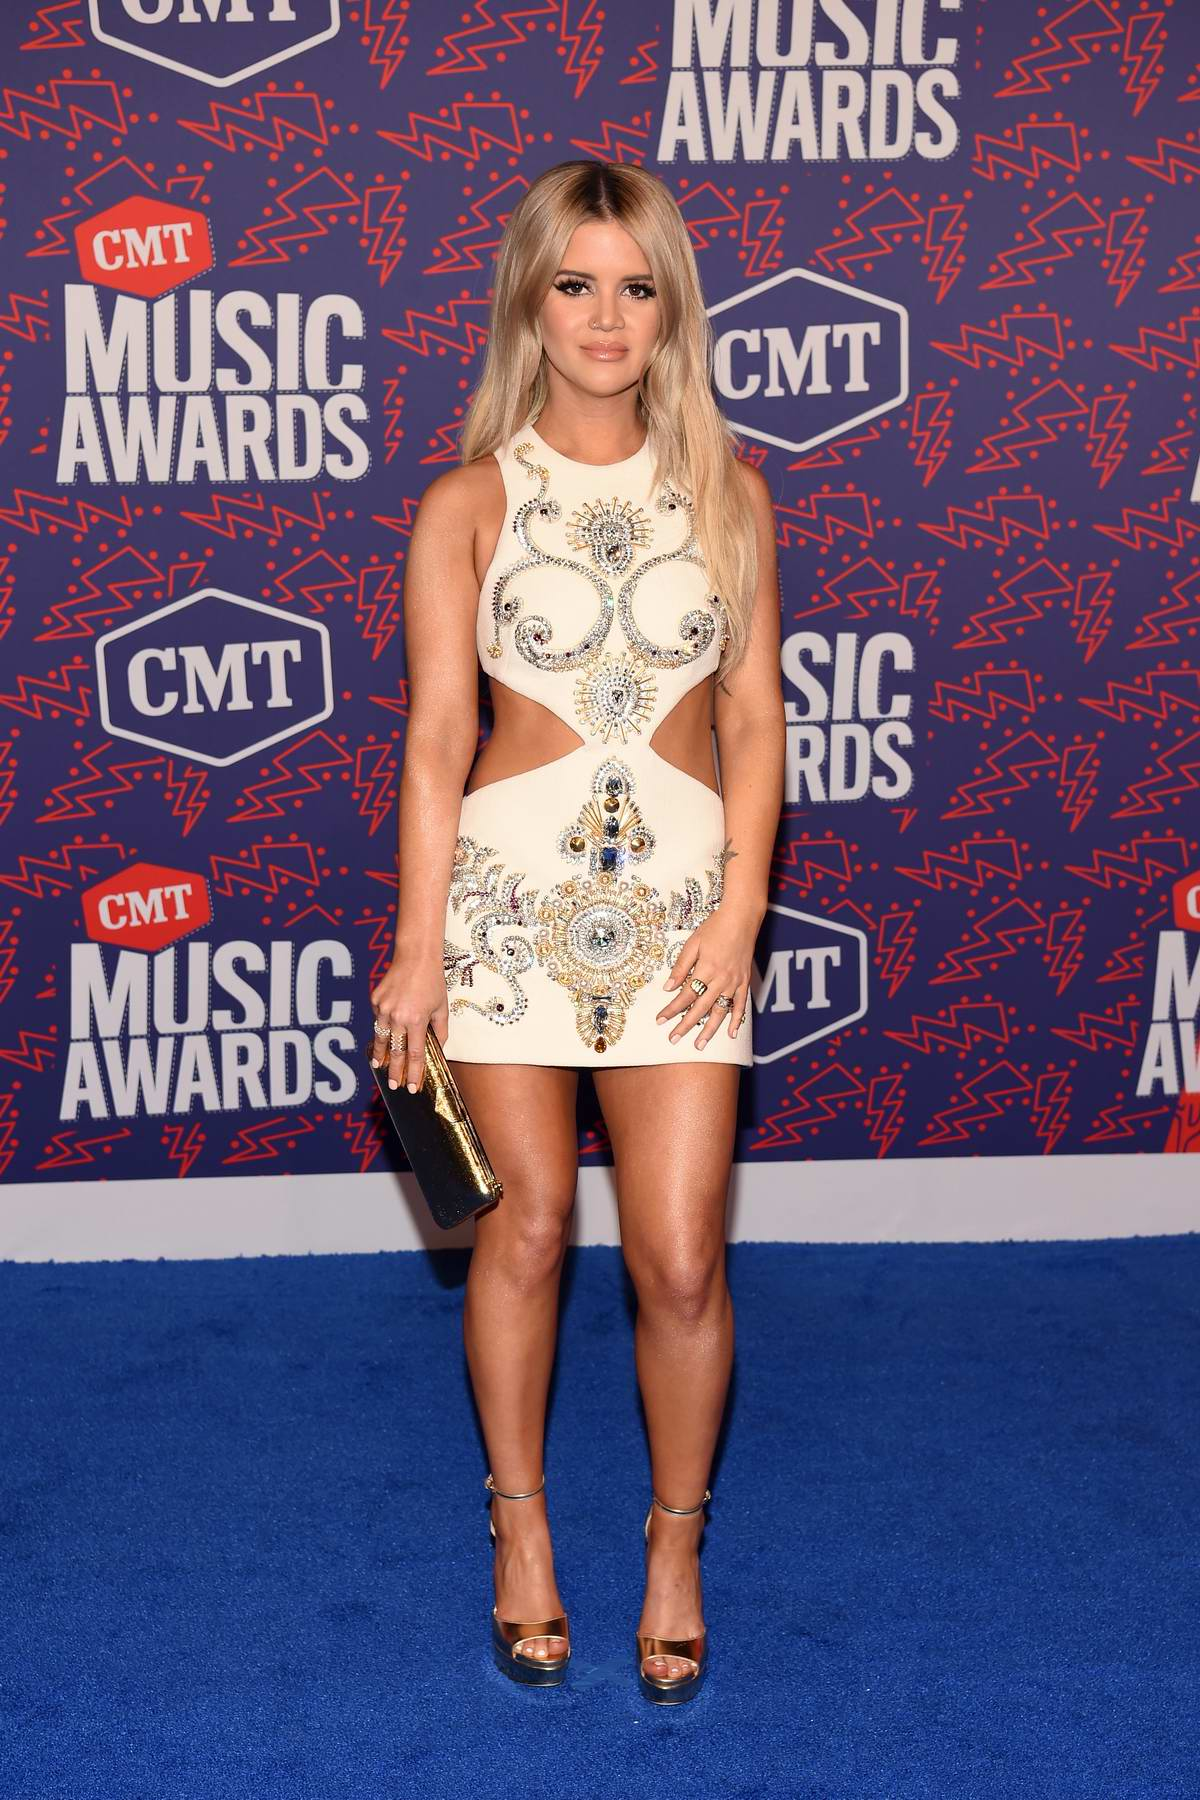 Maren Morris attends the 2019 CMT Music Awards at Bridgestone Arena in Nashville, TN